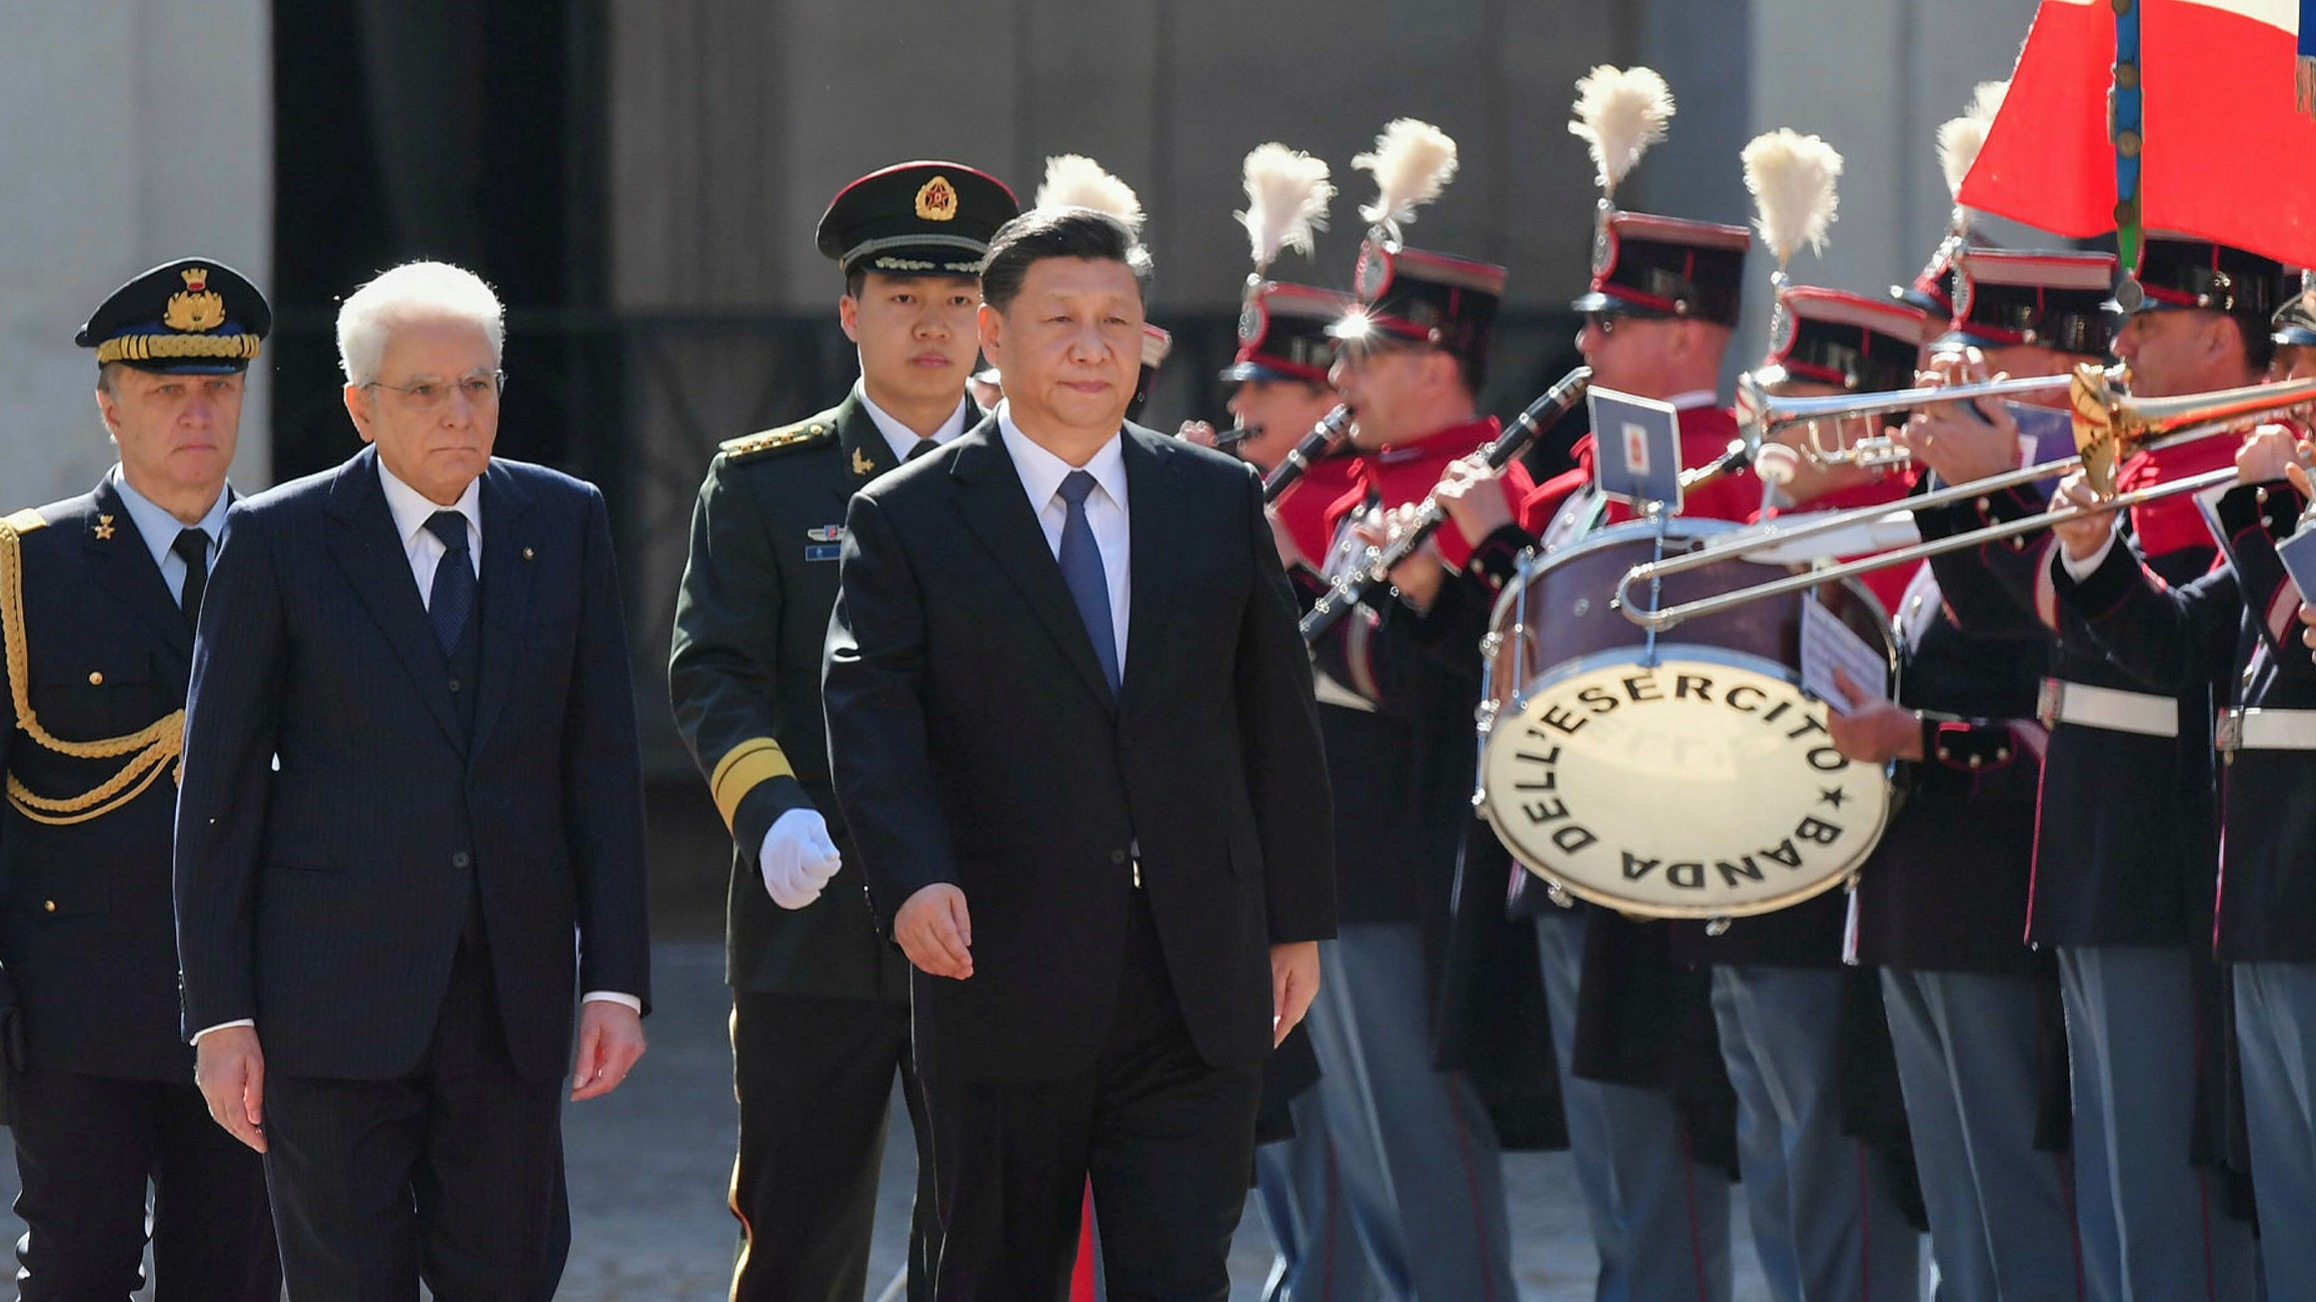 Mario Draghi sets tone in cooling EU-China relations